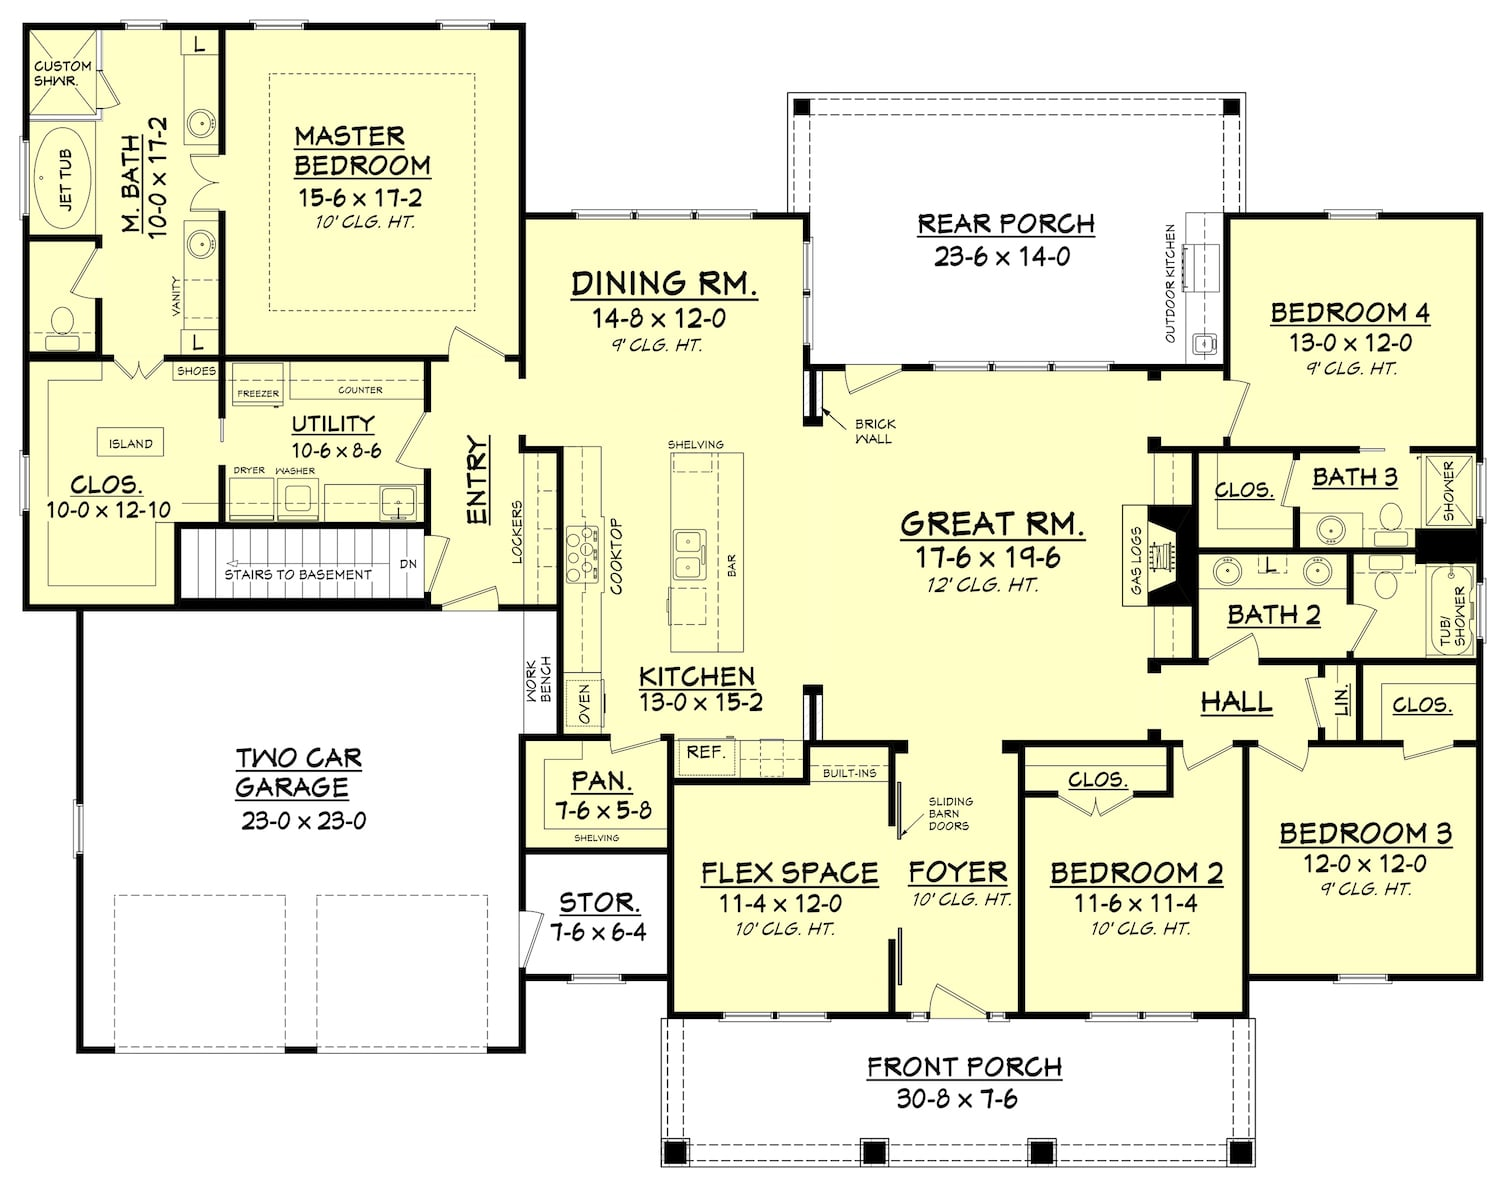 Design Tricks To Get The Most Out Of A Floor Plan